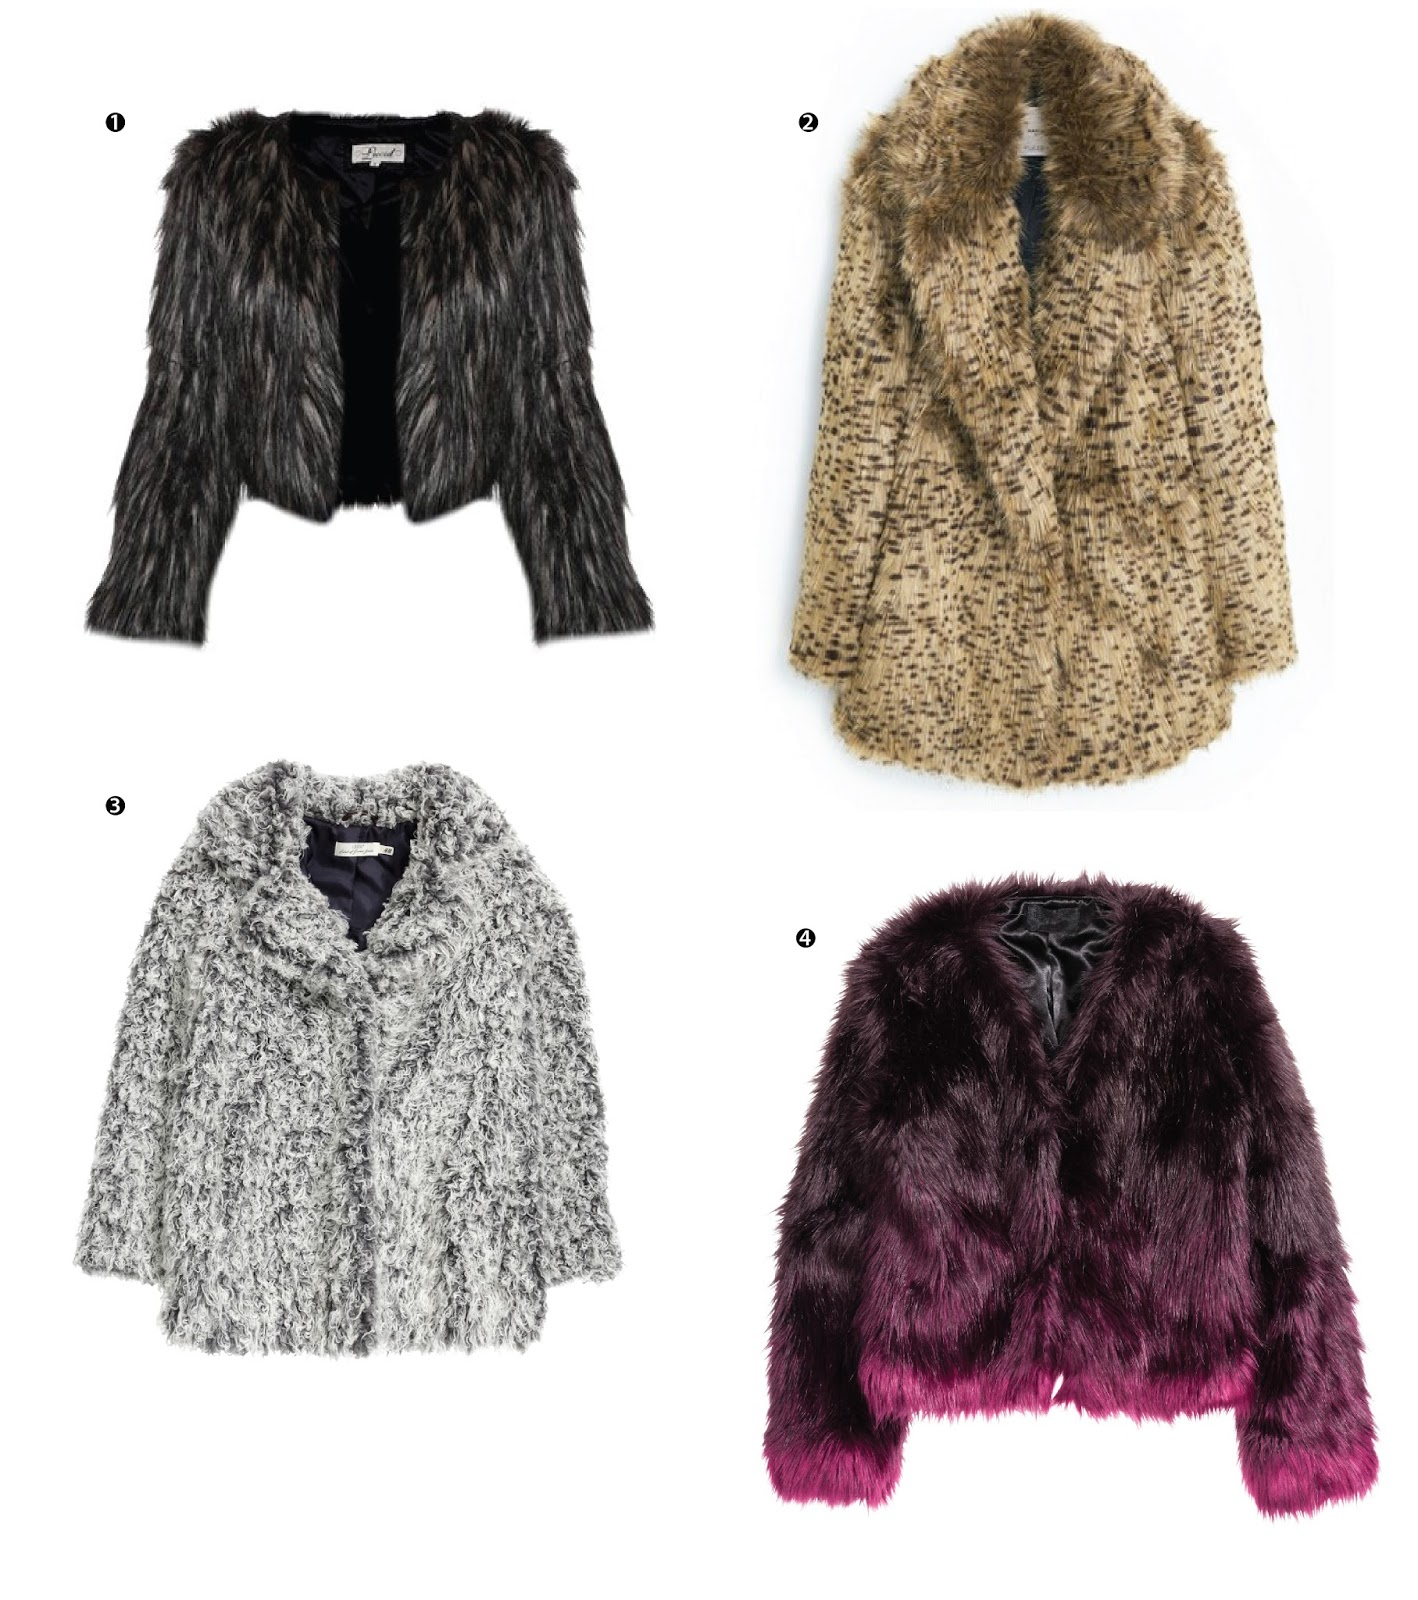 thesis statement on fur coats Thesis statement on fur coats toefl exam form ps when it comes to colourful faux fur jackets, i have to give 2 shoutouts to 2 digital influencers who inspire me.